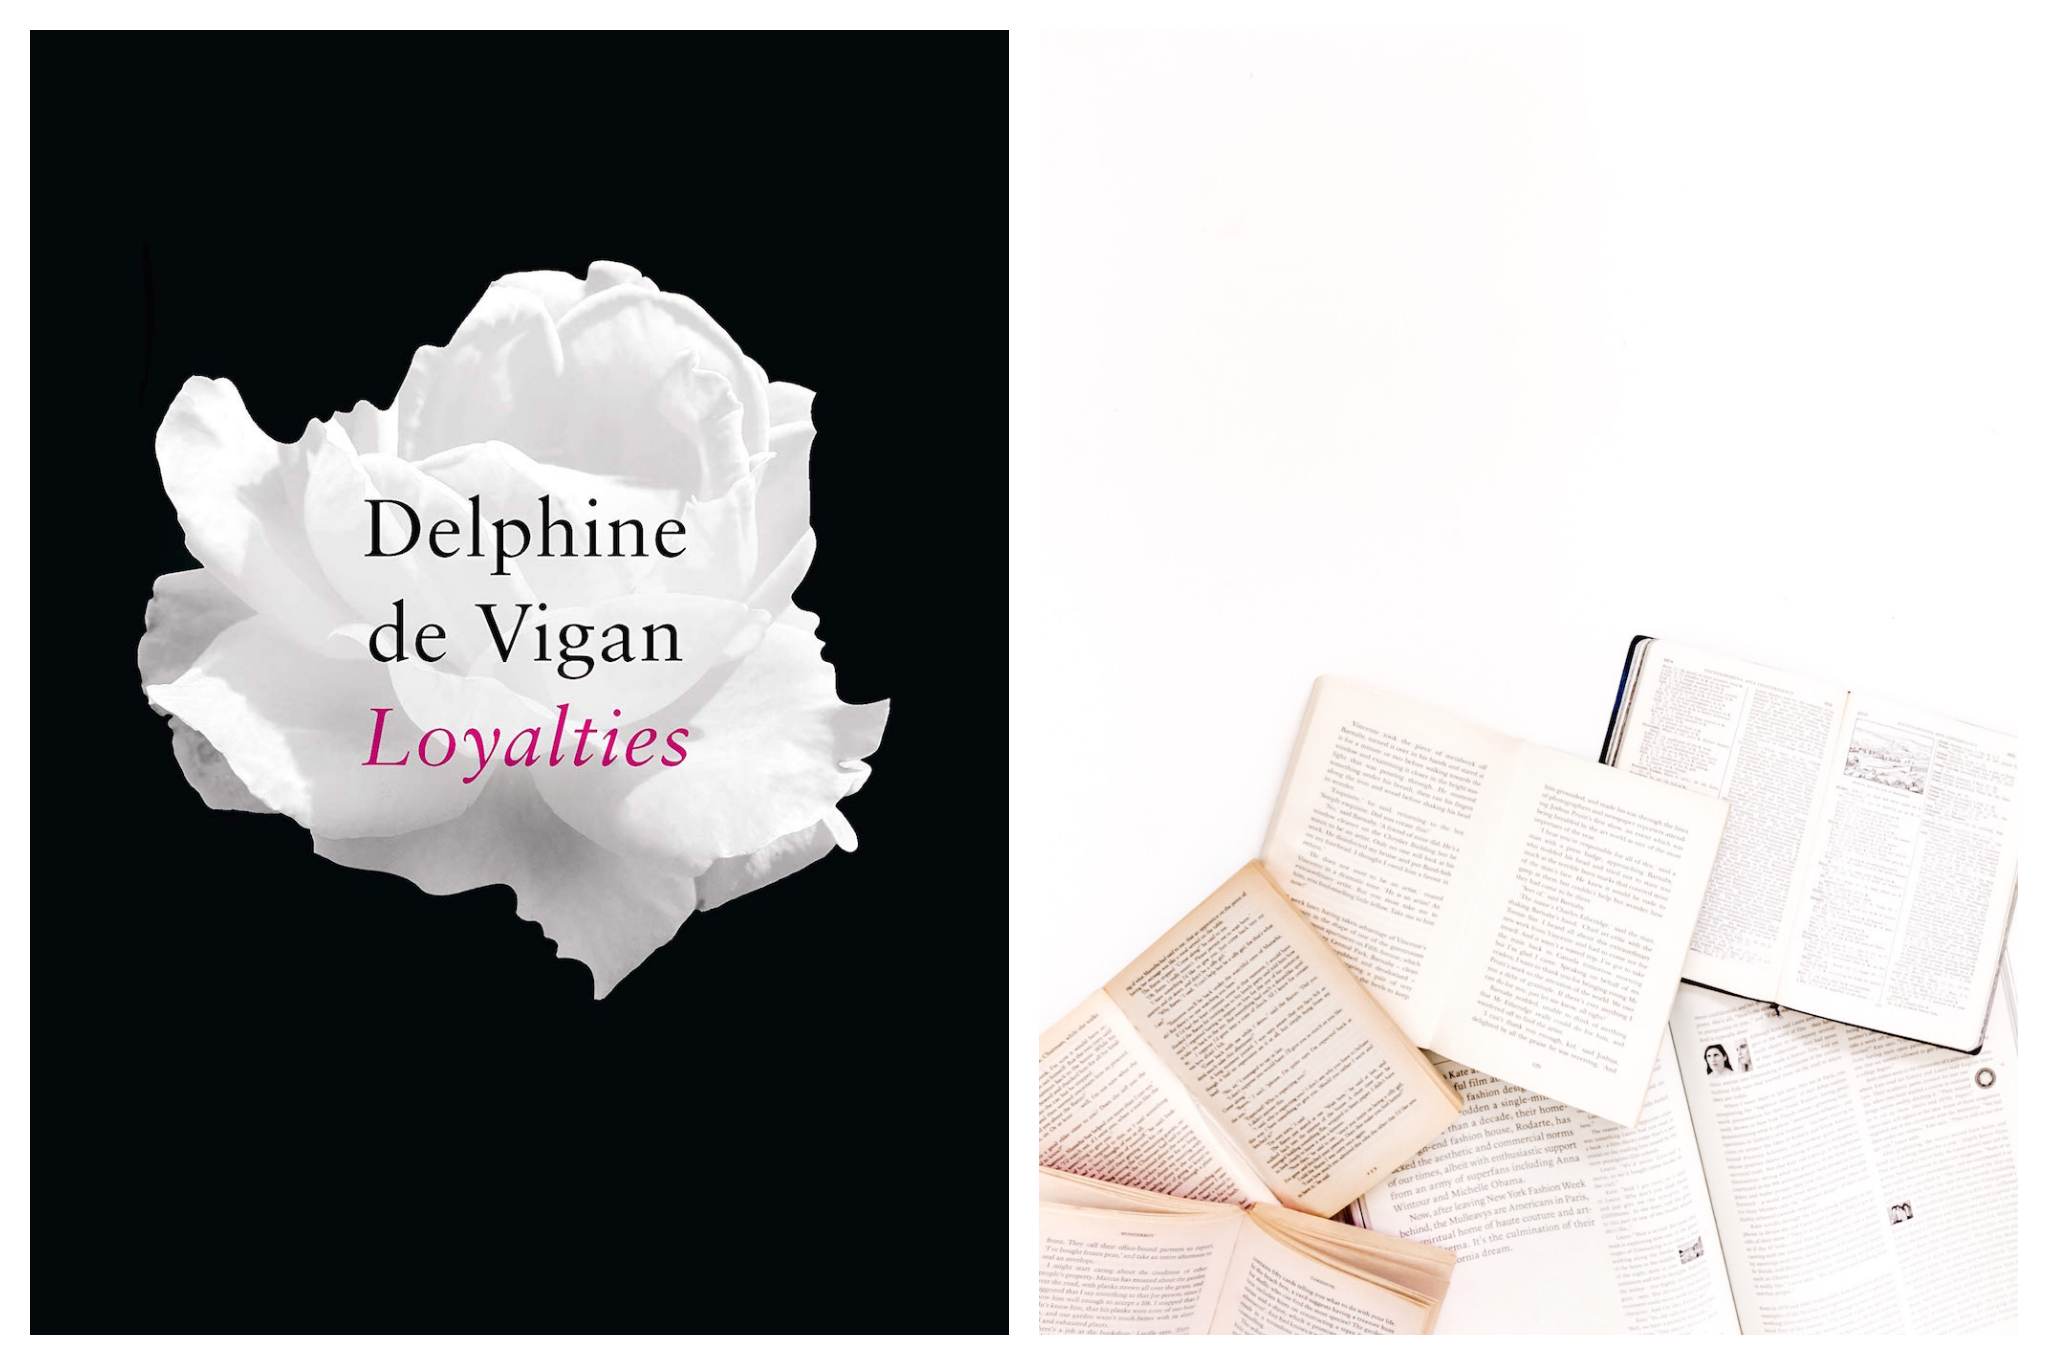 """Left: The cover for Delphine de Vigan's new book loyalties, which is black with a white flower in the center, Right"""" Books are laid open atop a white surface"""